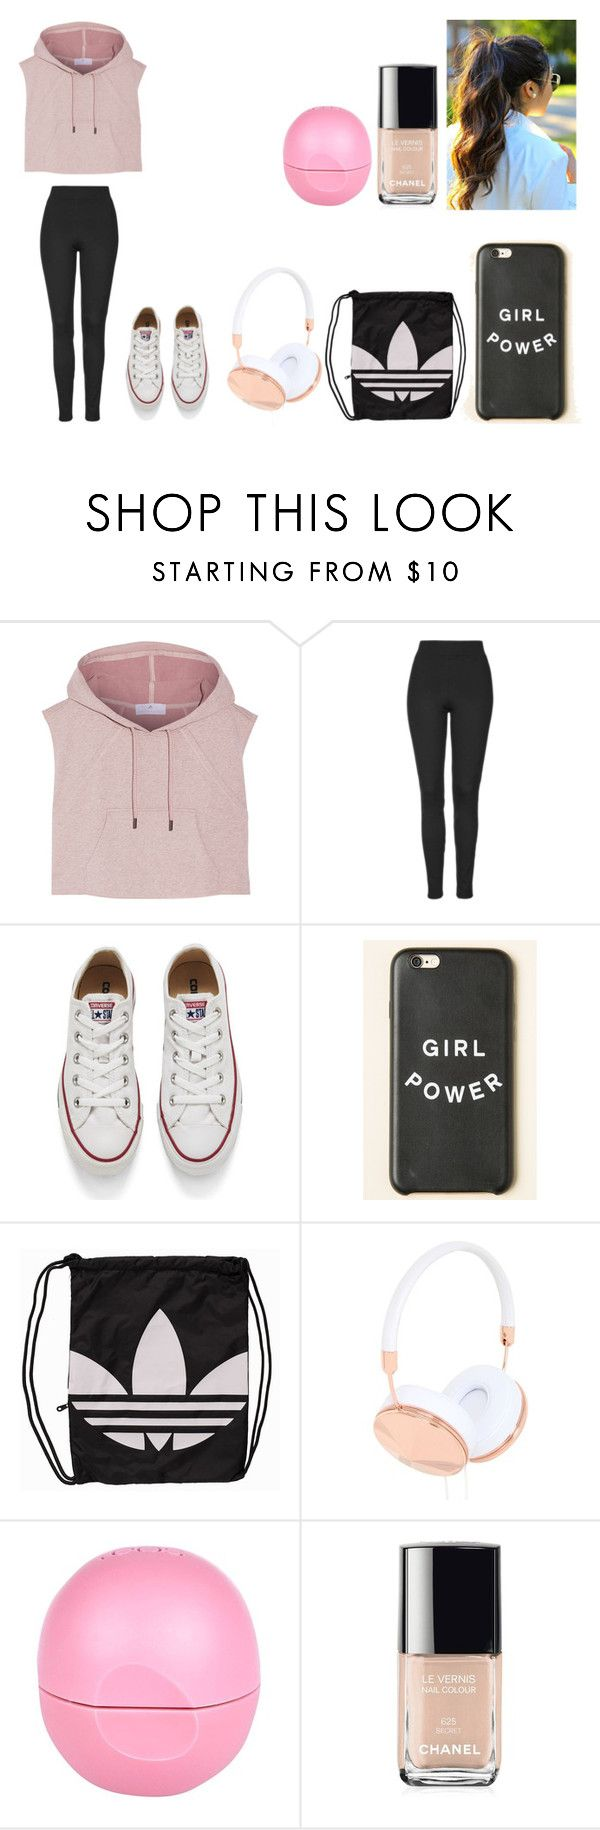 """""""Untitled #474"""" by kalieh092 on Polyvore featuring adidas, Topshop, Converse, adidas Originals, Frends, River Island, Chanel, women's clothing, women and female"""